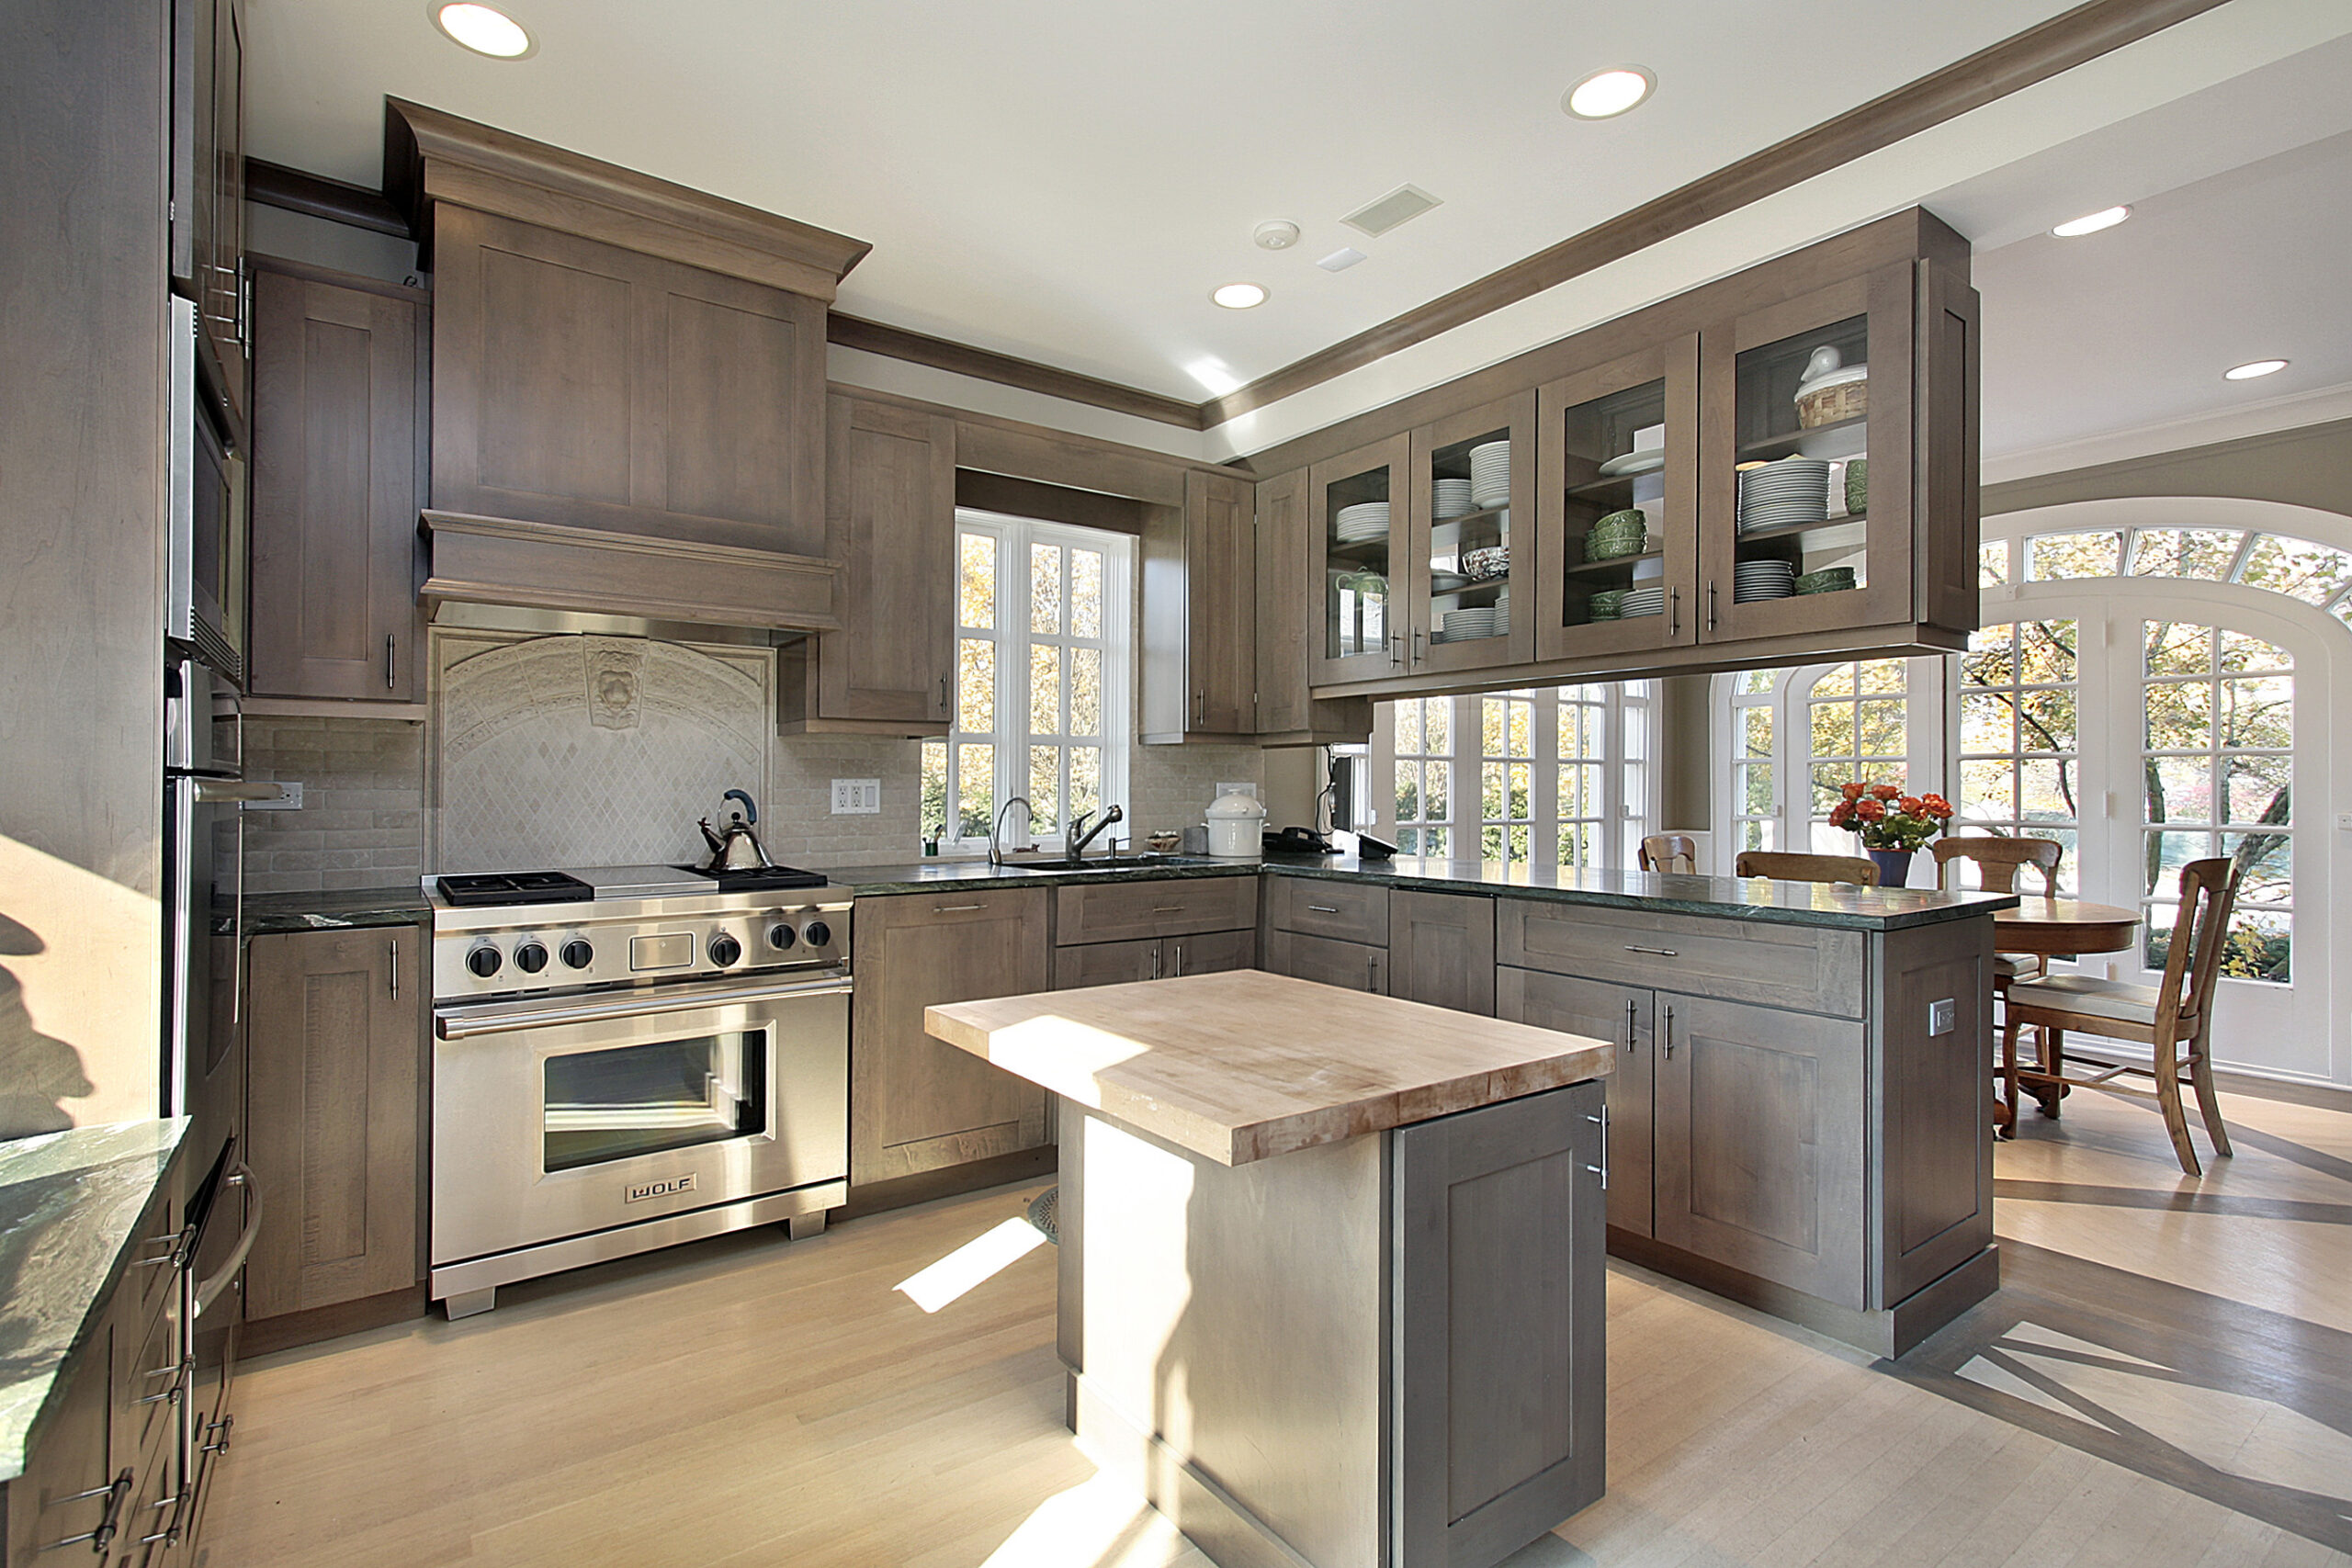 kitchen remodel local tulsa renovation professional contractor